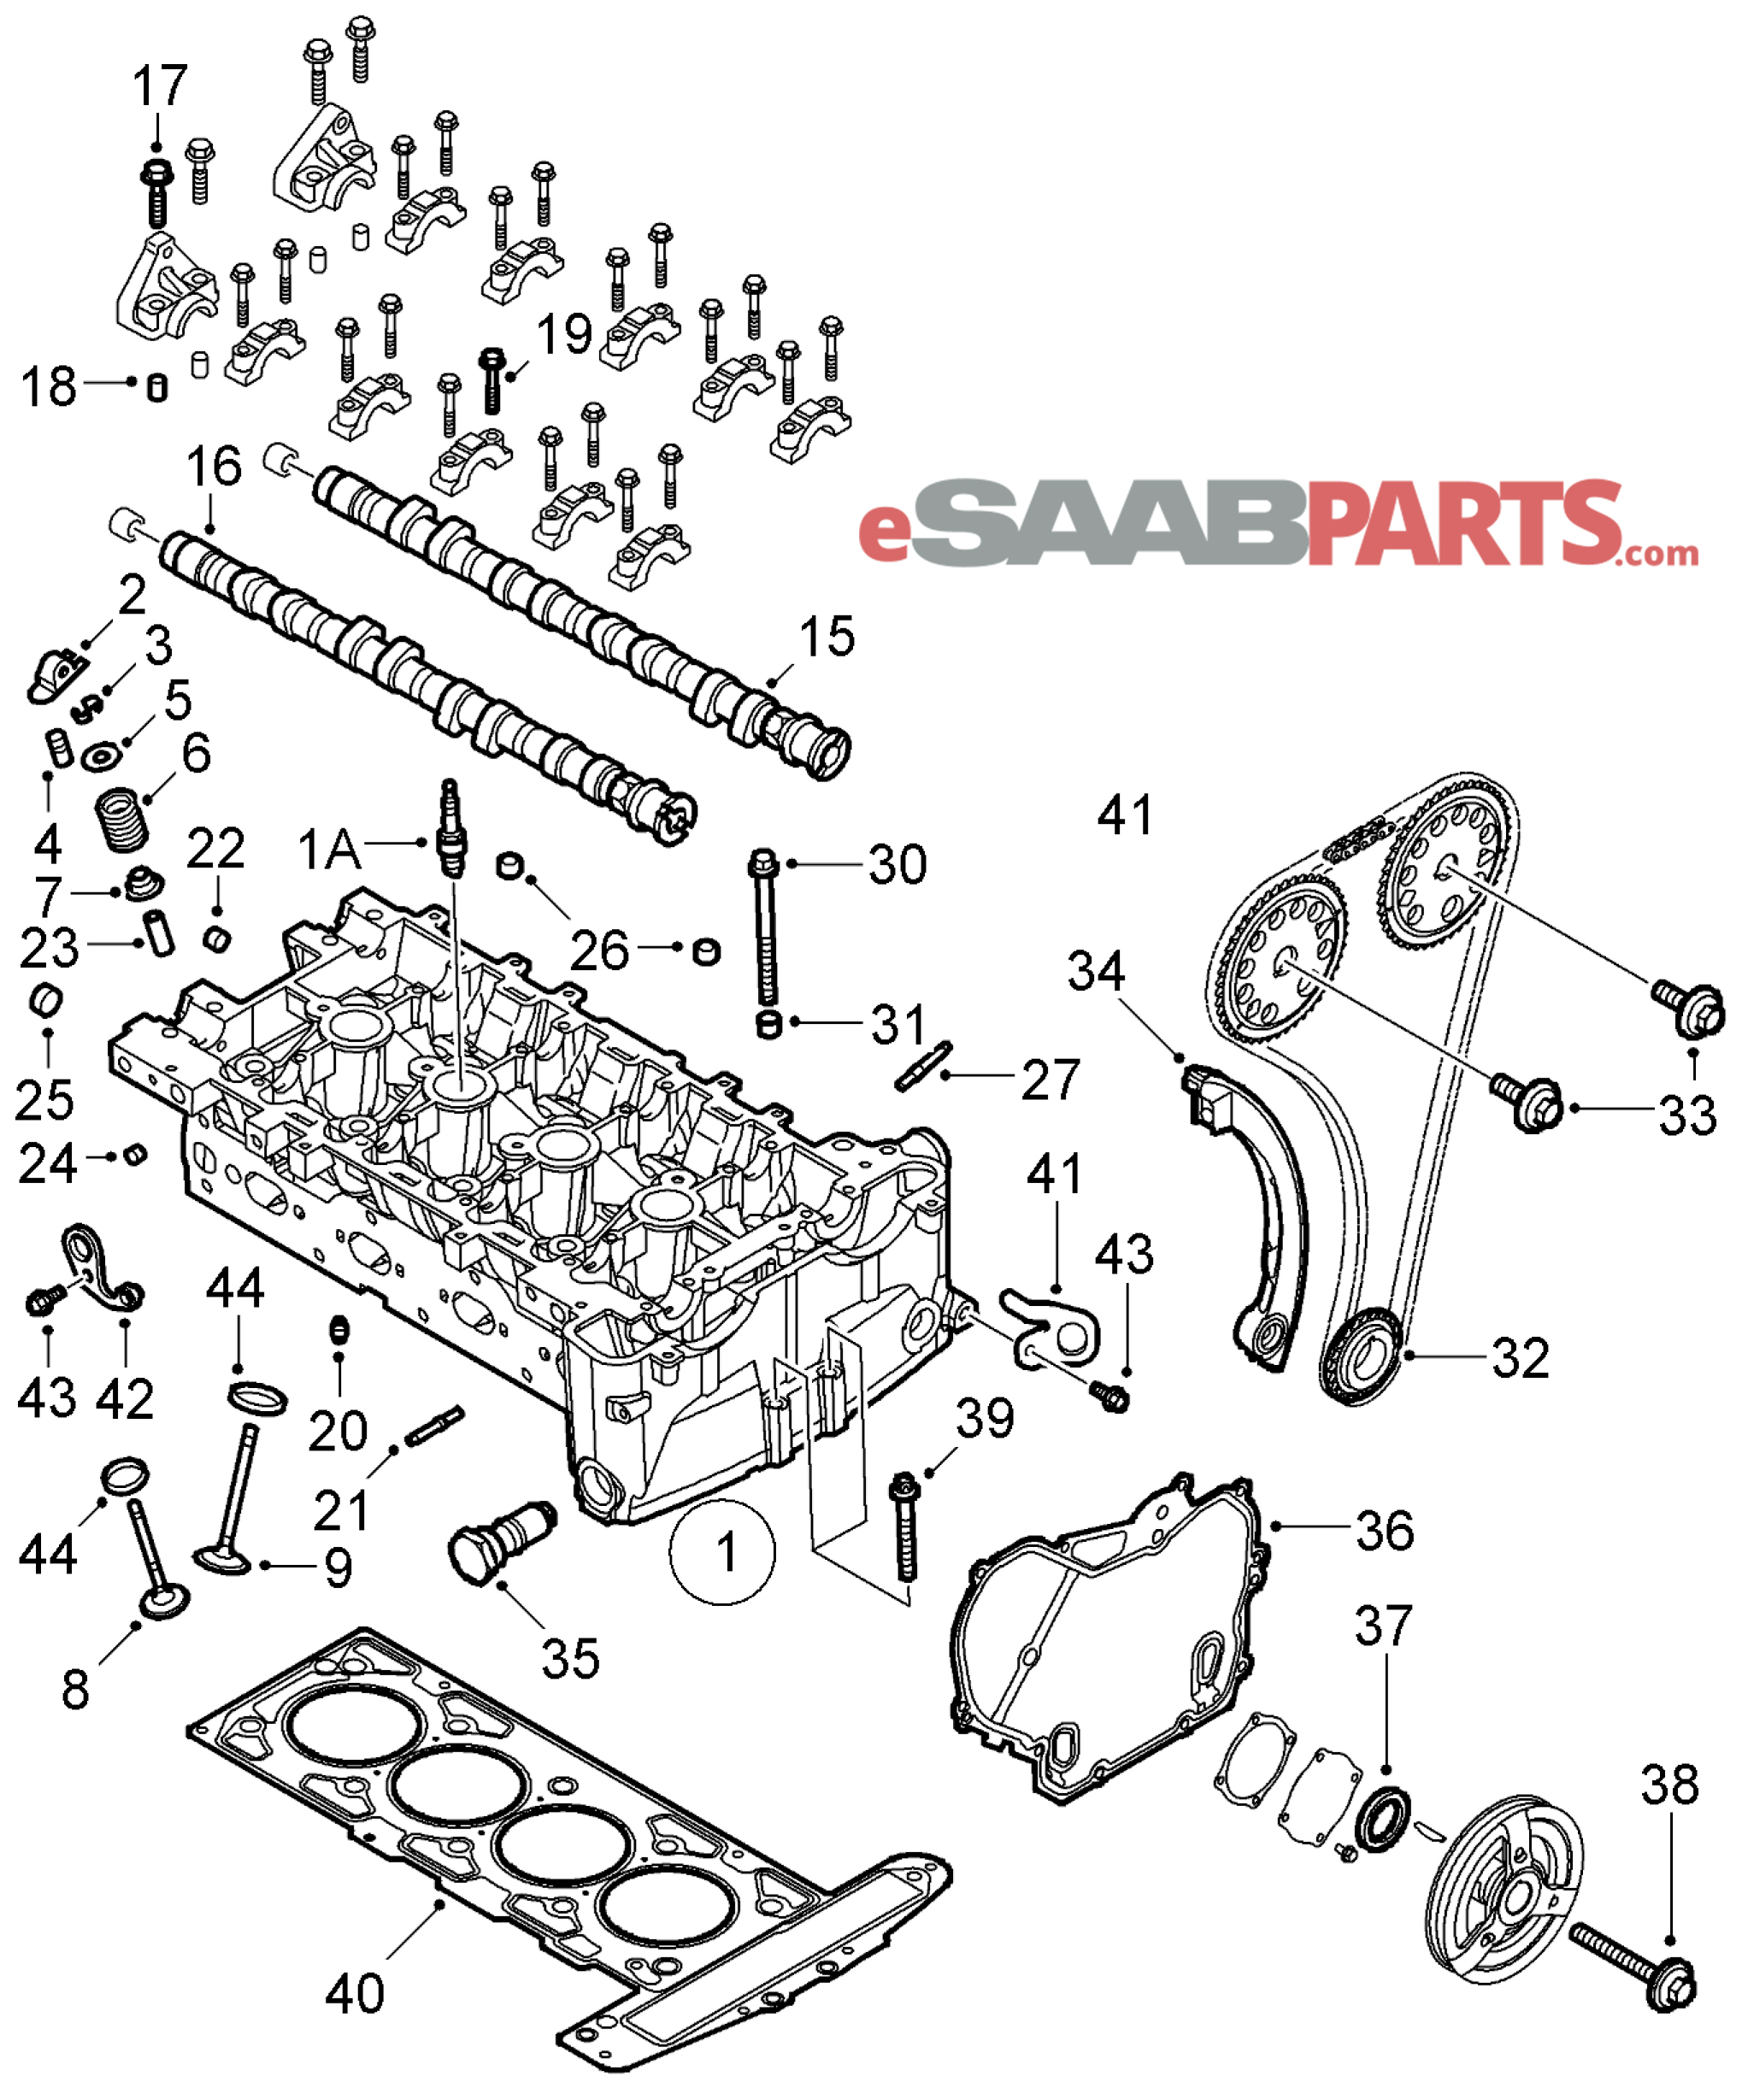 Saab Wiring Automatic Transmission Parts Diagram 99 Saab